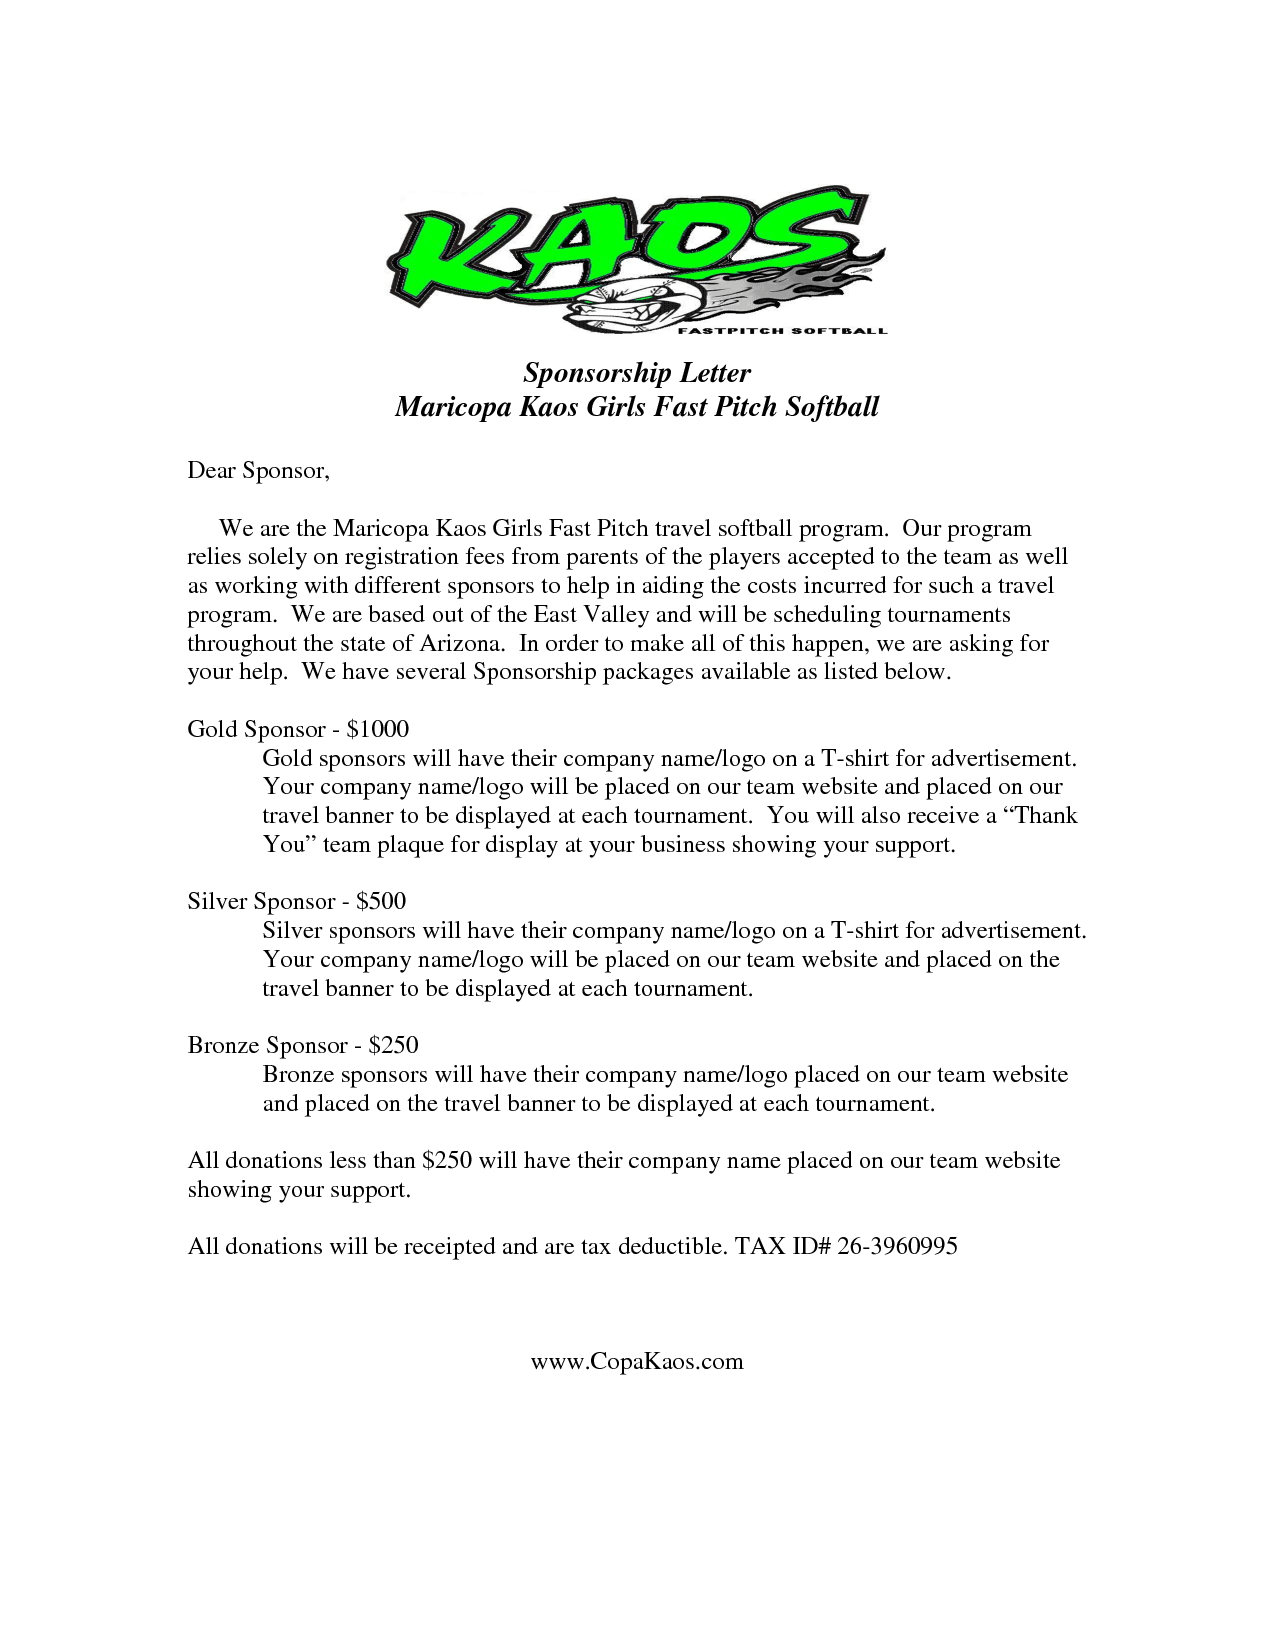 Mission Trip Fundraising Letter Template - Image Result for Sample Sponsor Request Letter Donation